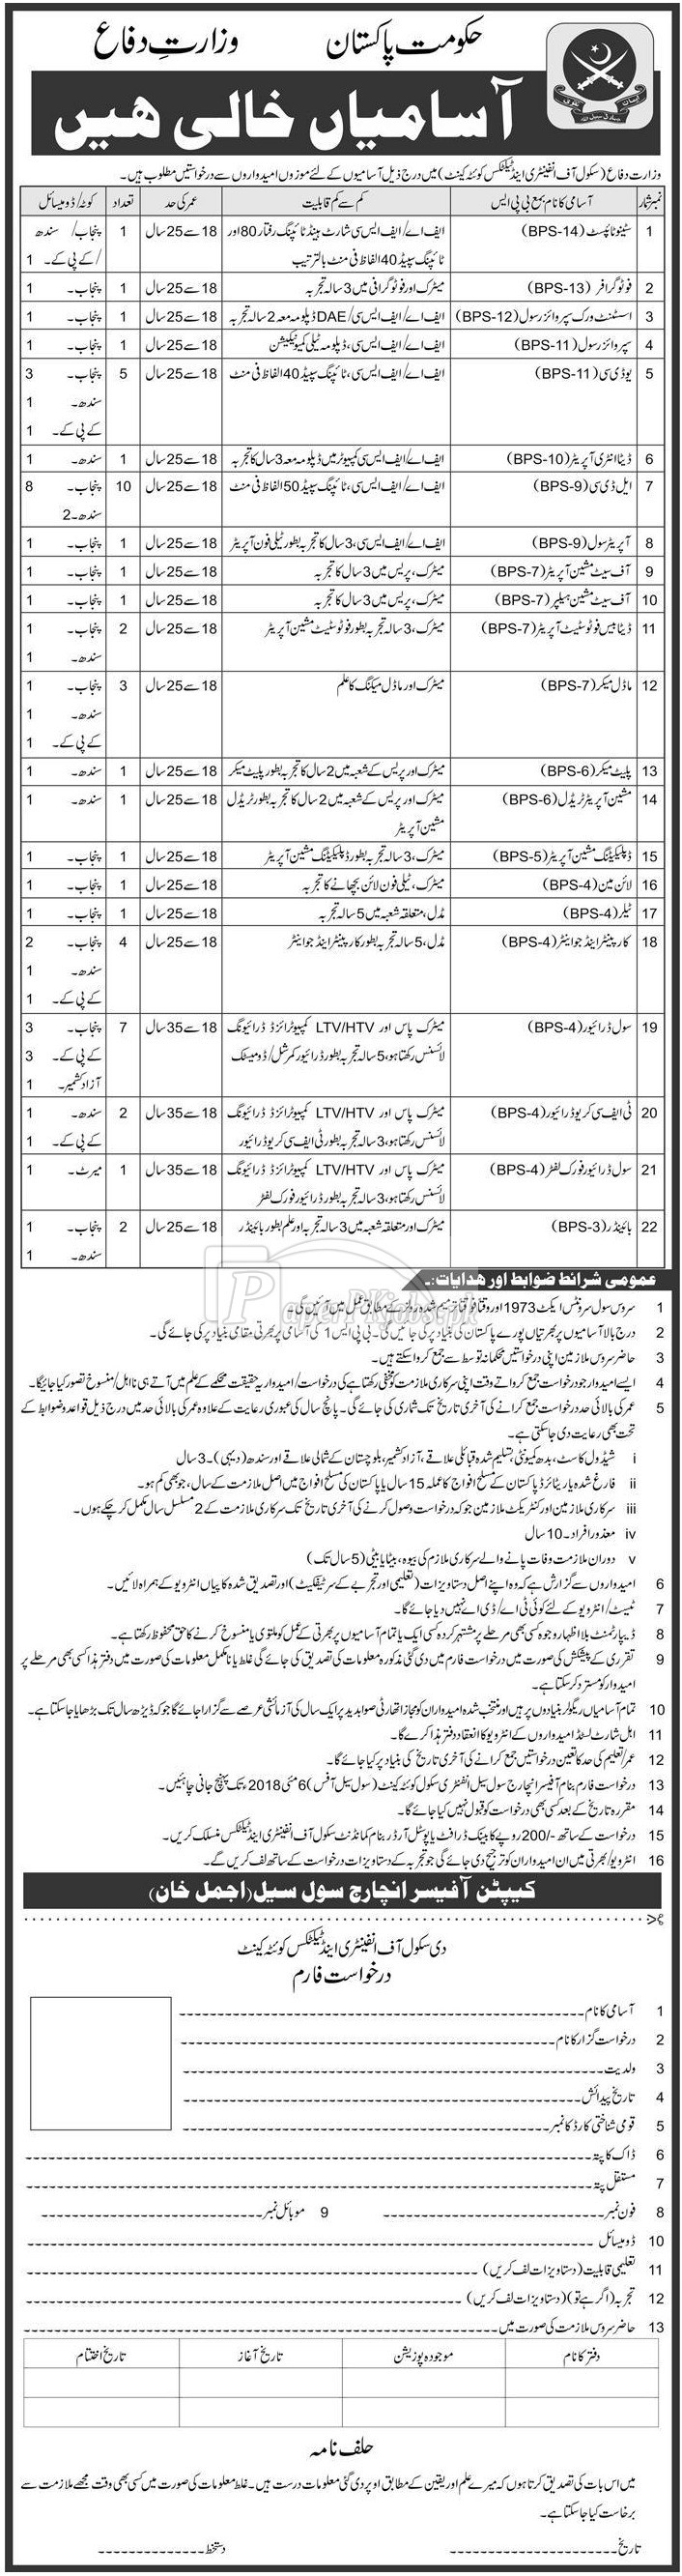 Ministry of Defence Jobs 2018